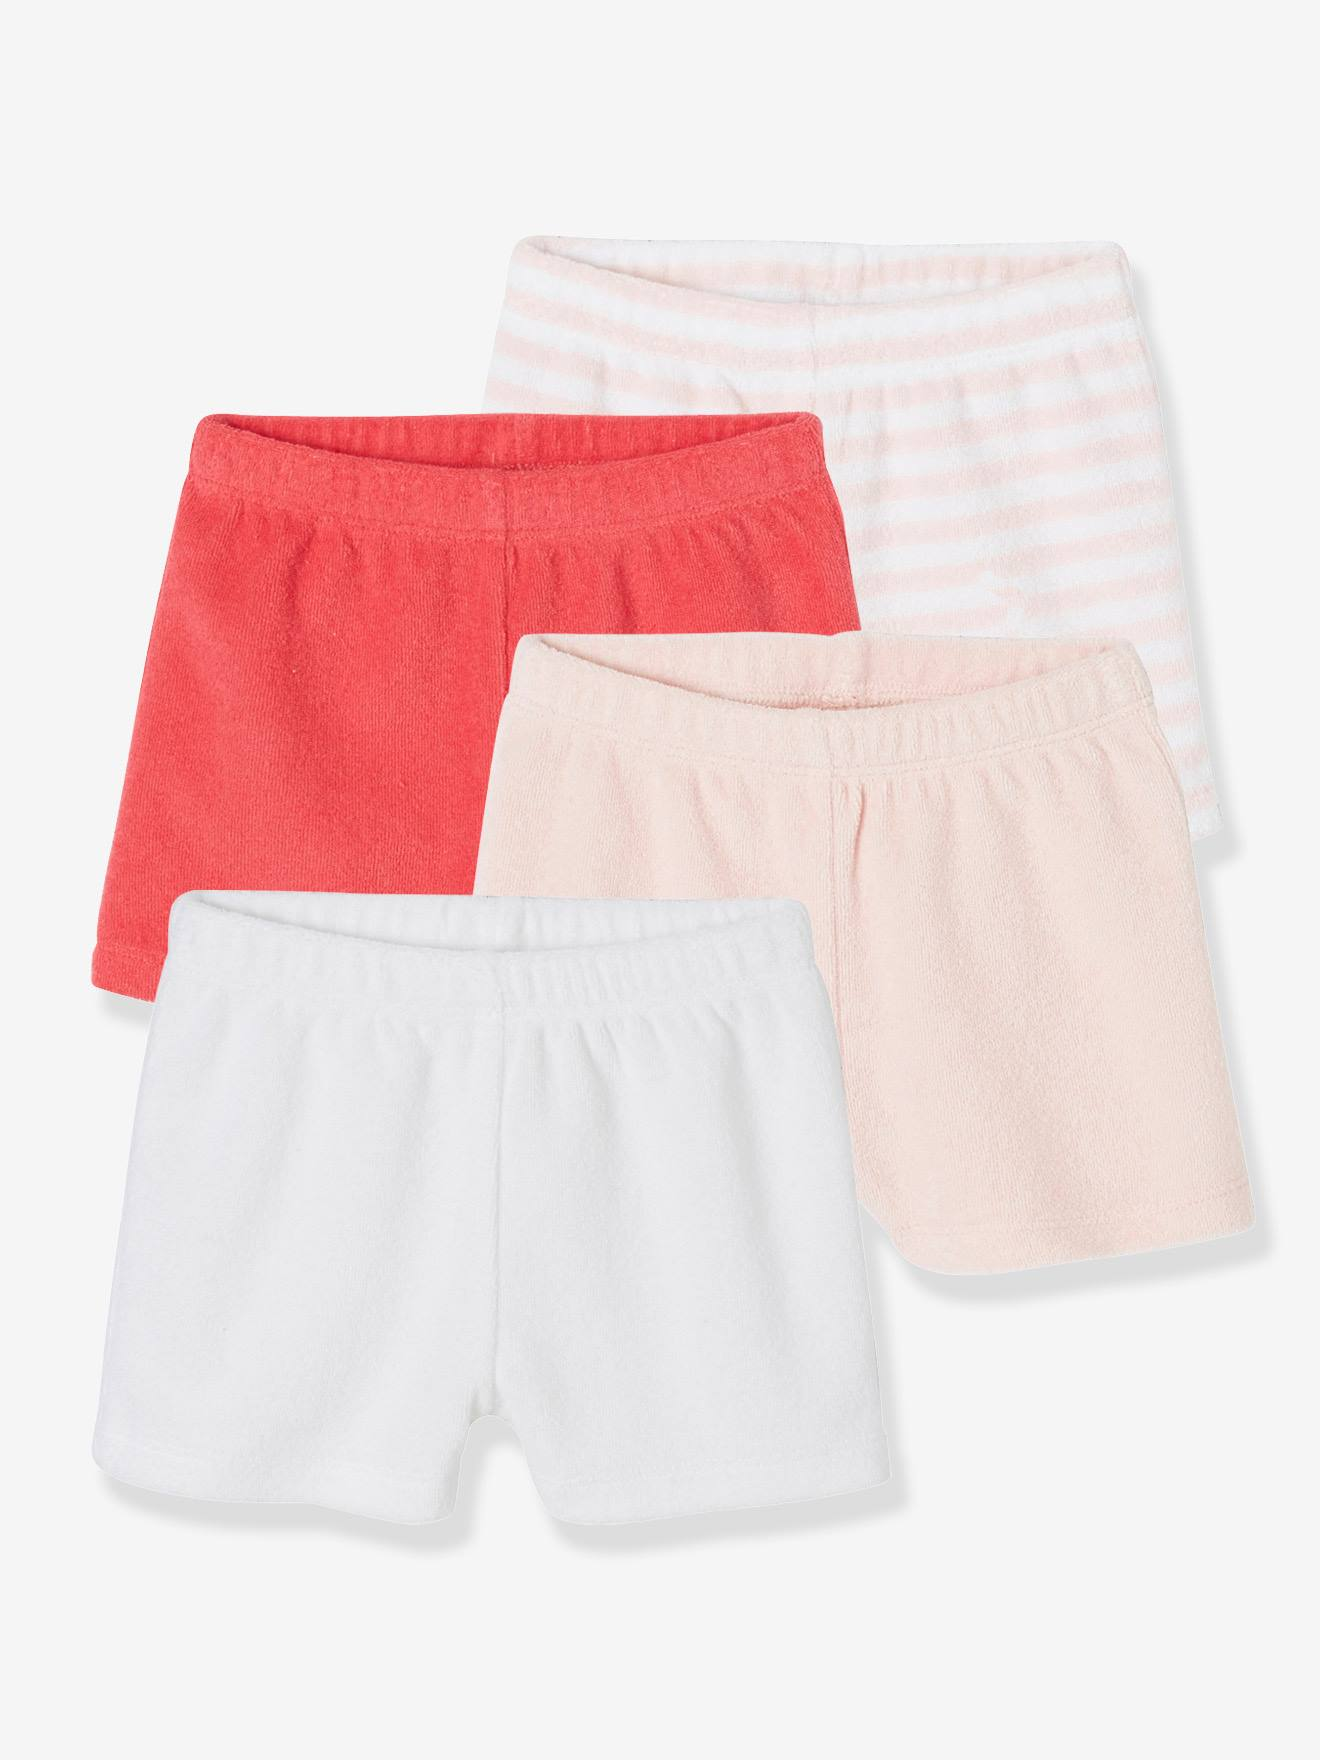 Boys' Clothing (newborn-5t) Bottoms Adaptable Baby Swmmimg Shorts Big Clearance Sale